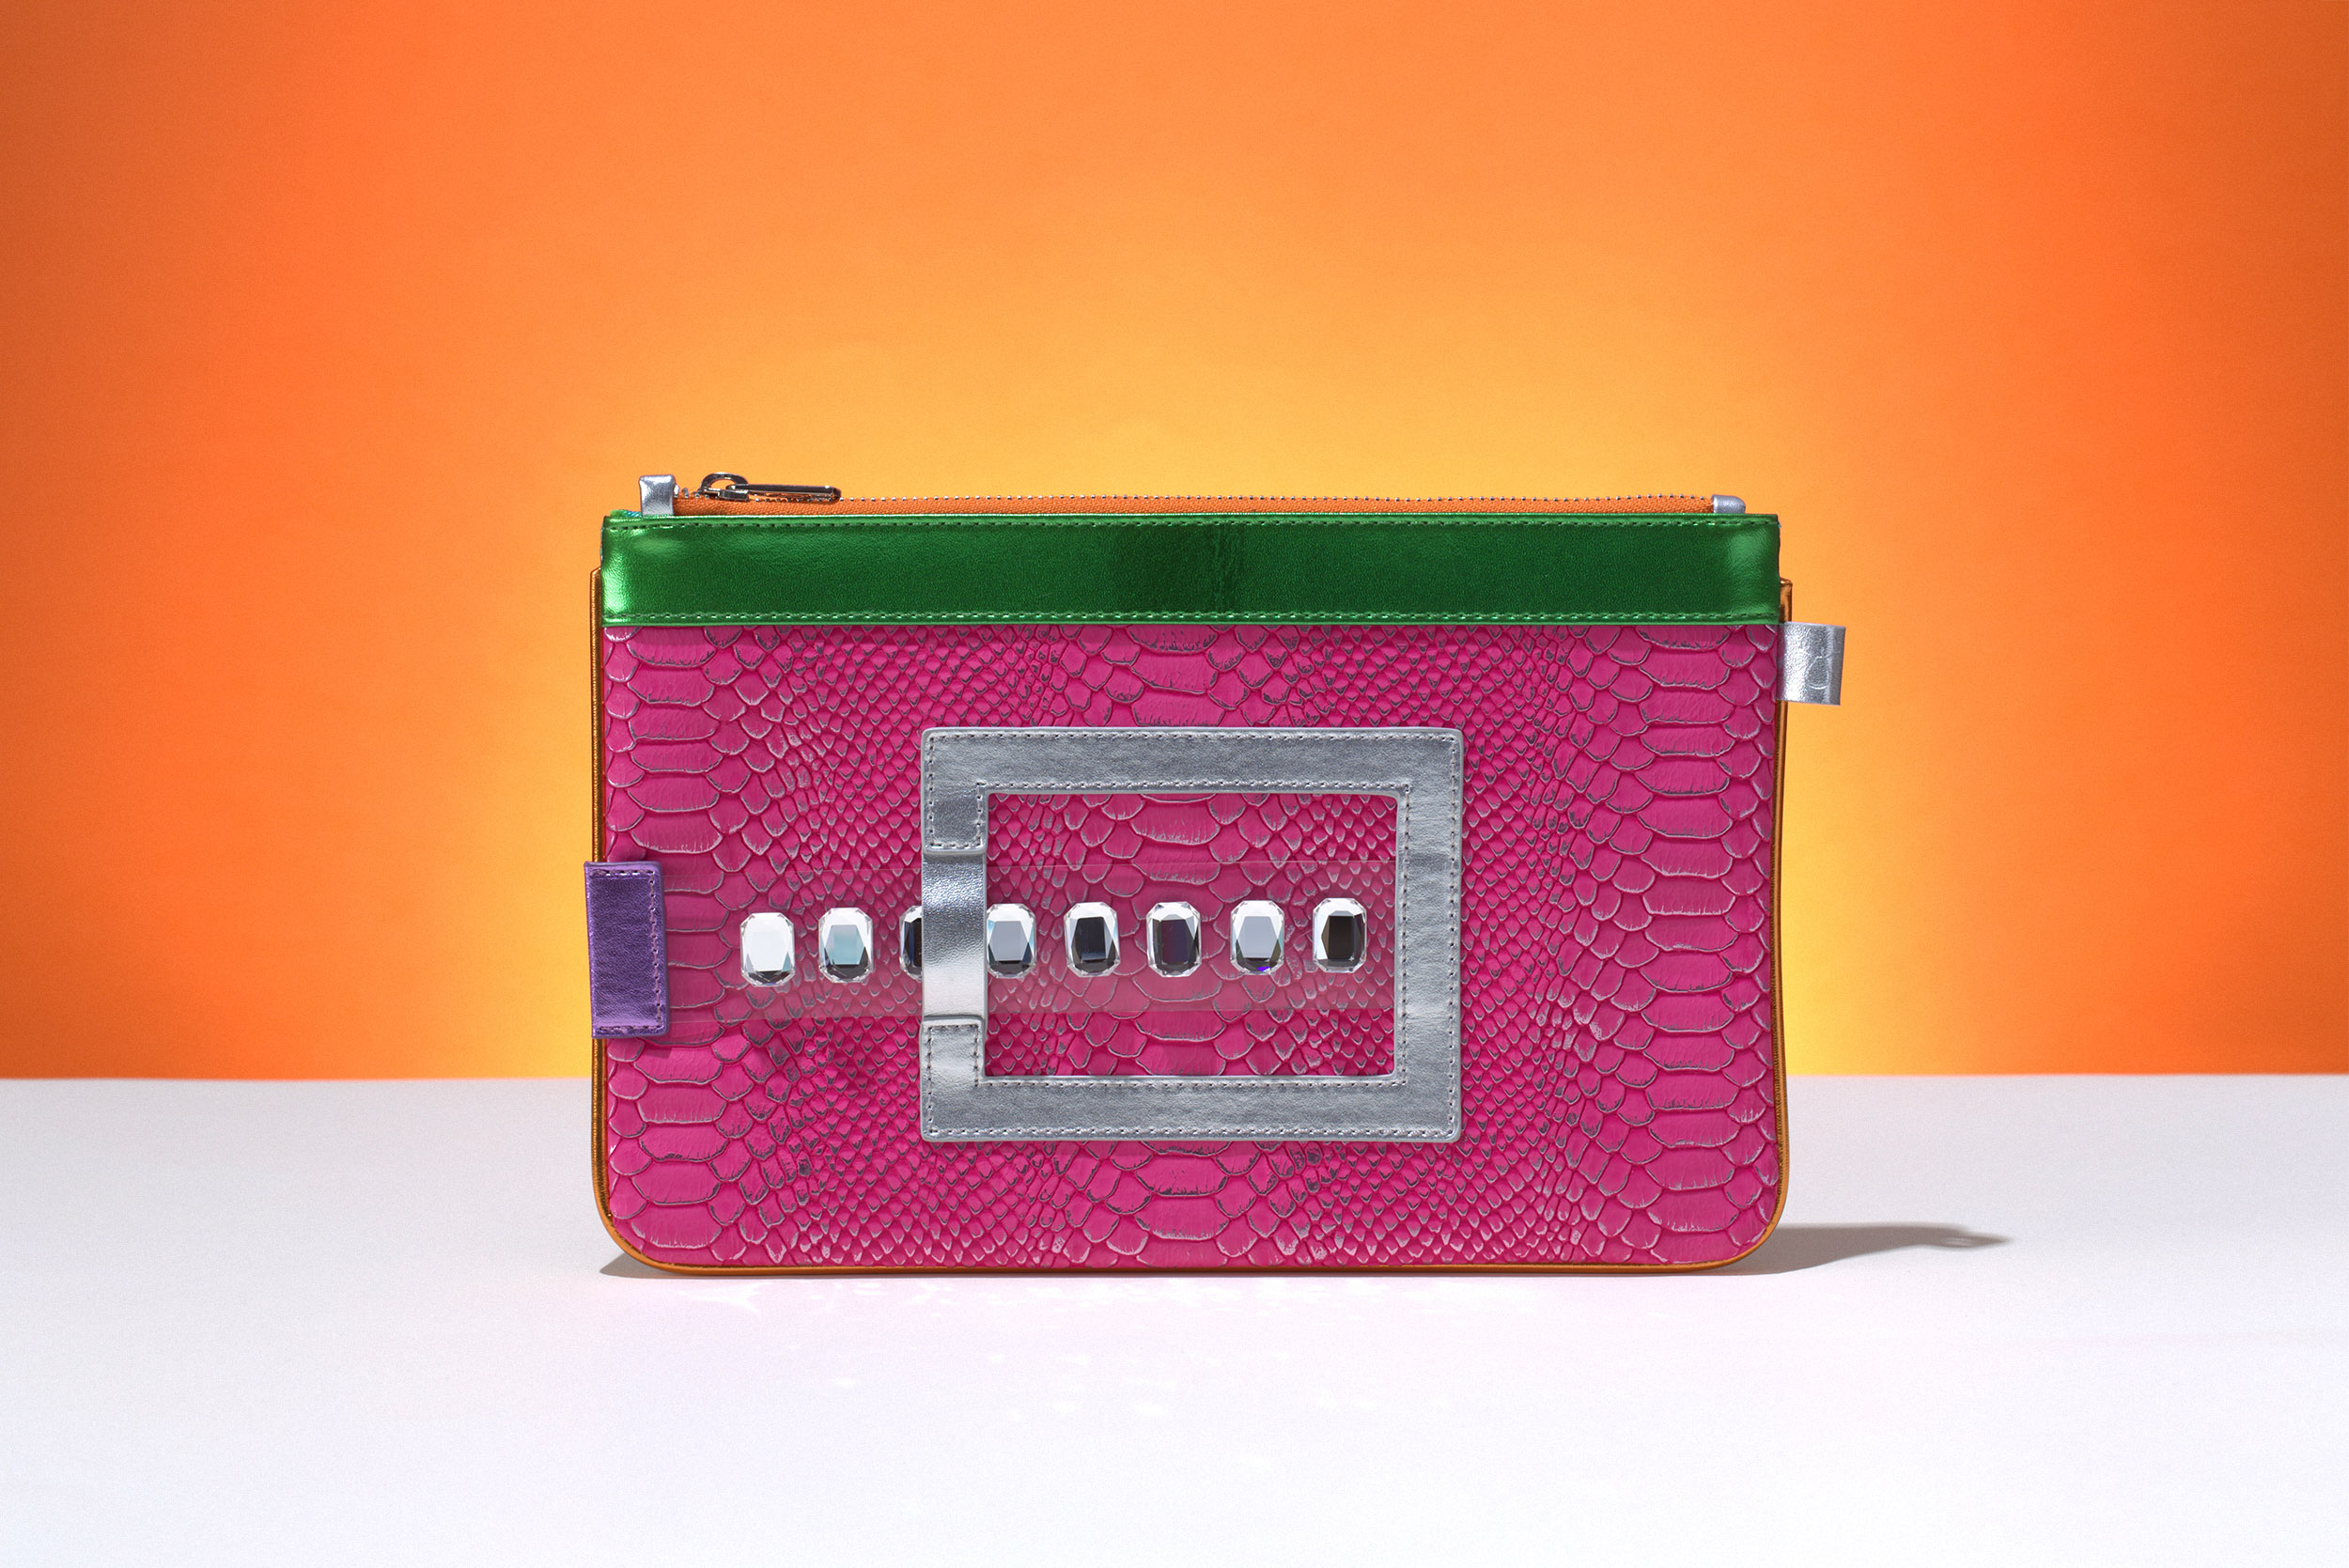 FruitenVeg-GEMINI bag-never-leather-vegetarian-mini-Ipad-bracelet-clutch-fuchsia-green-silver-bag